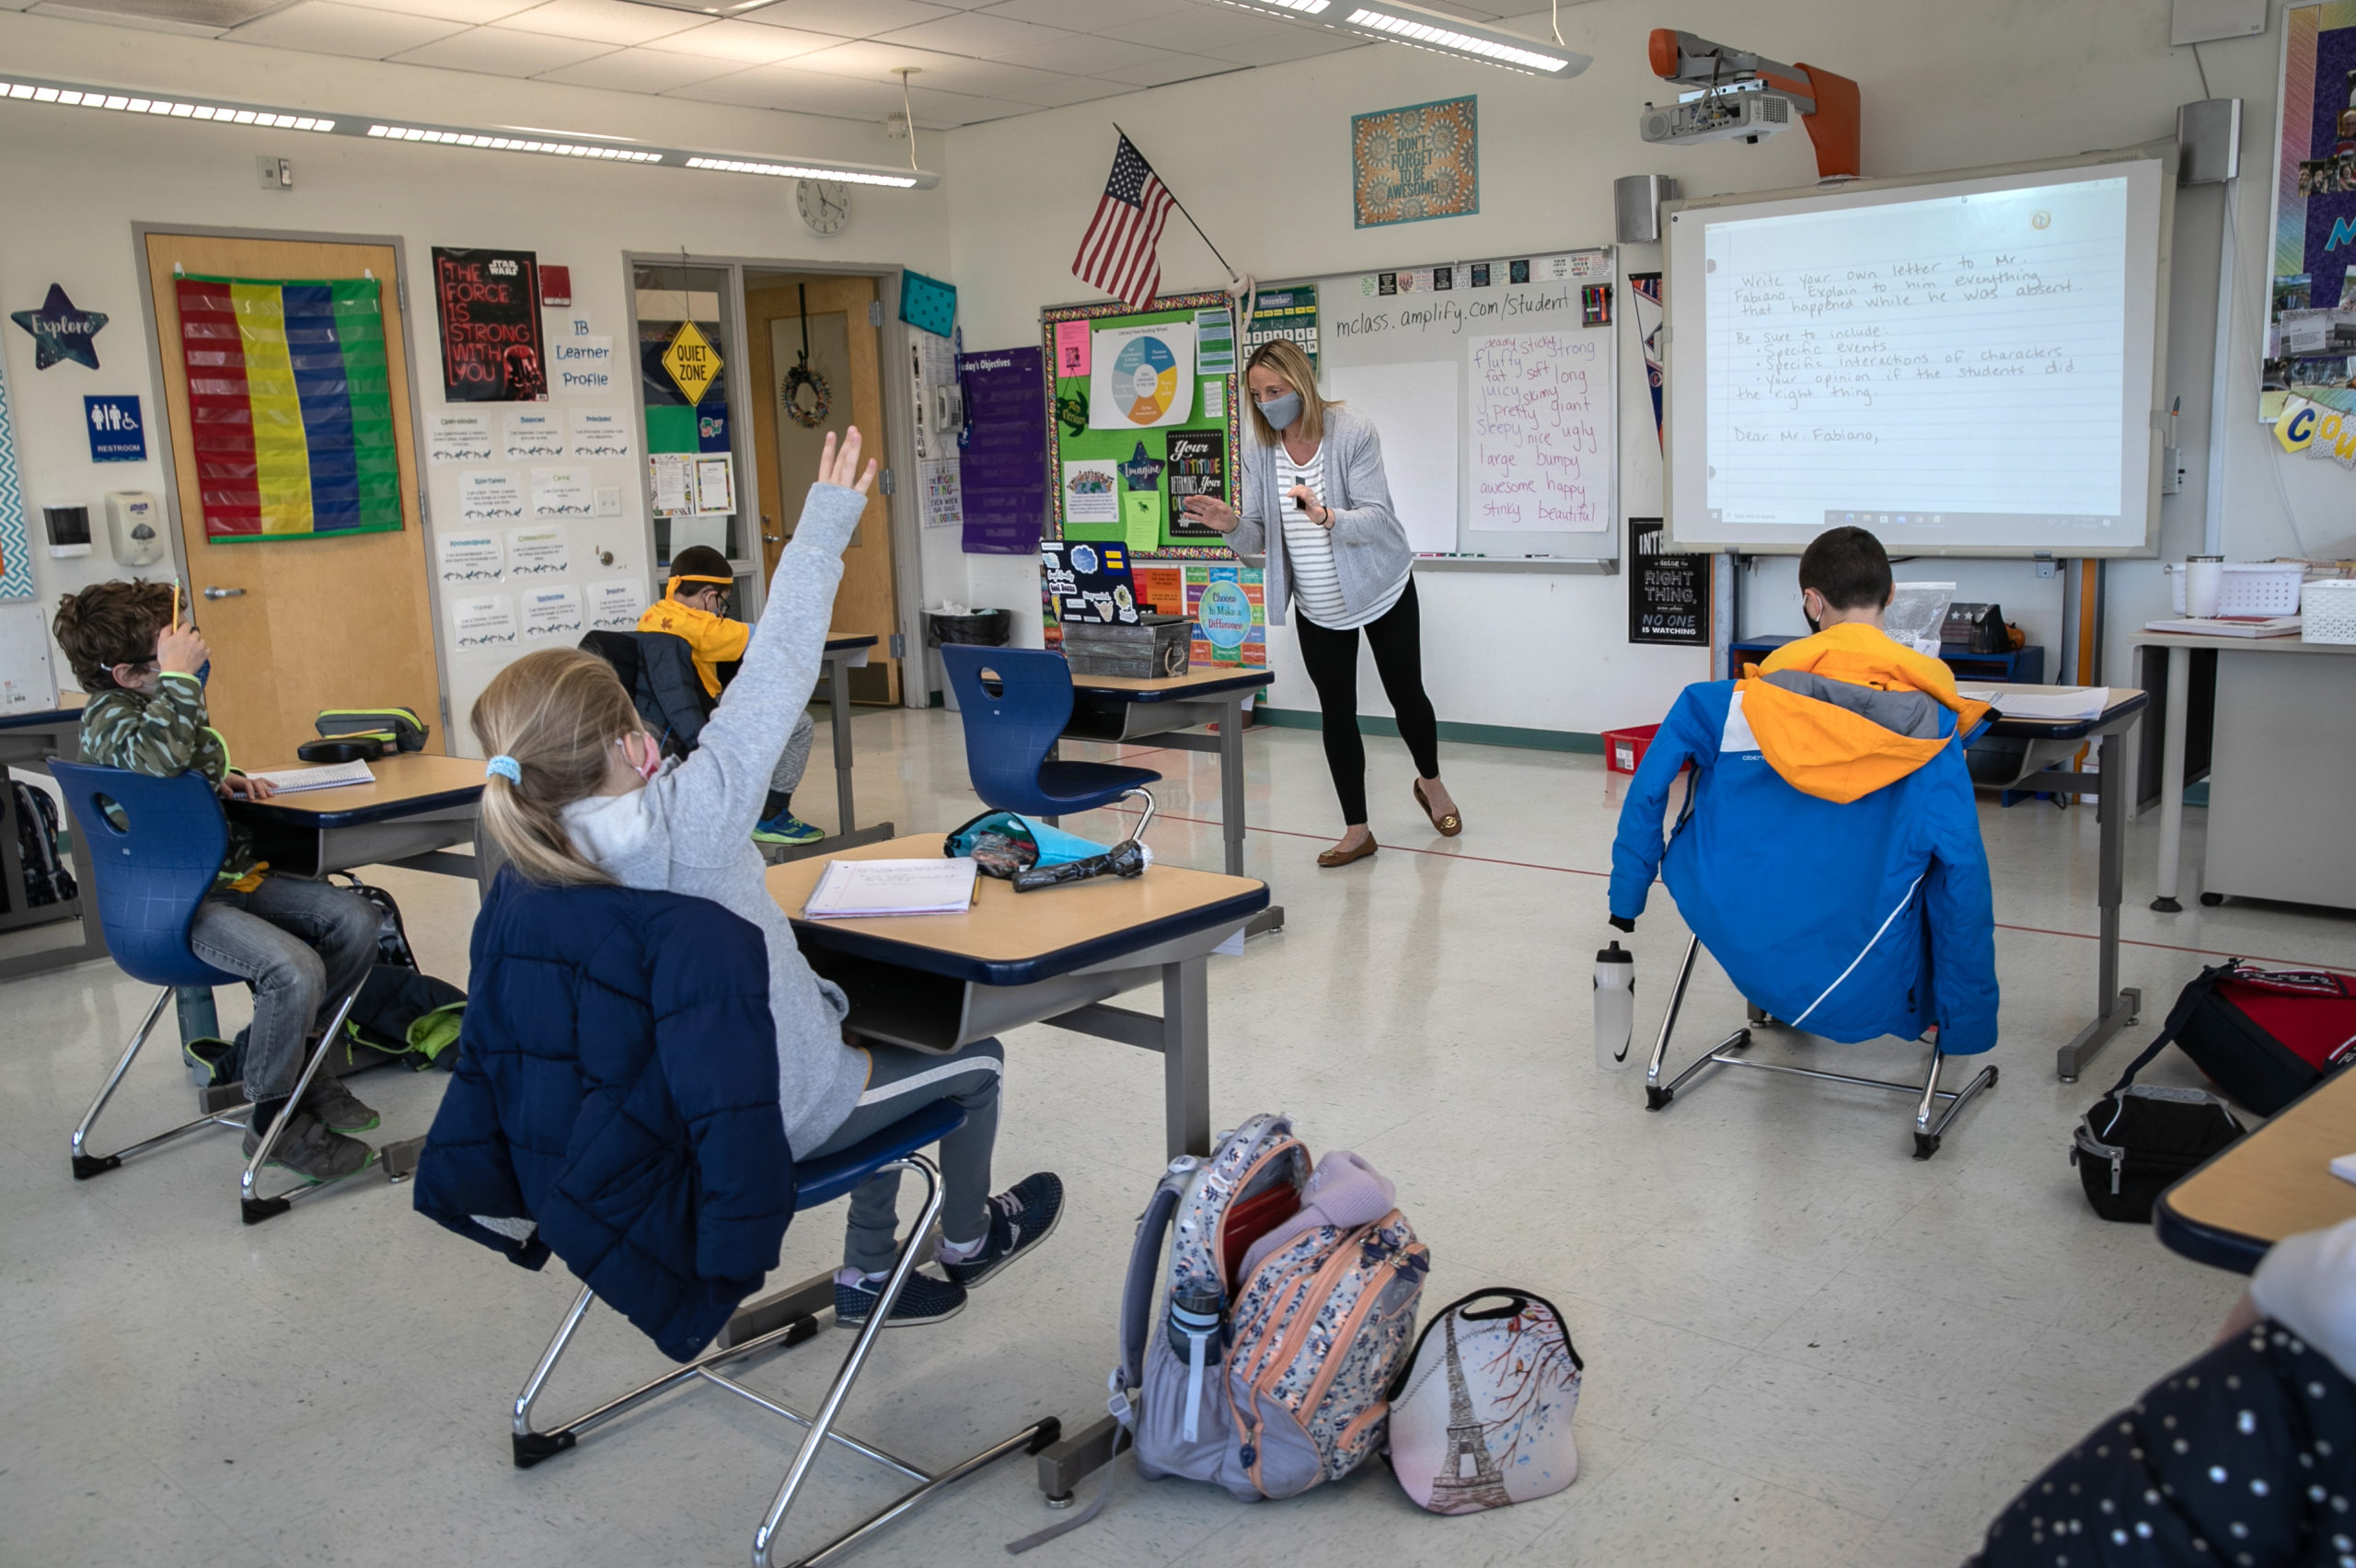 Third grade teacher Cara Denison speaks to students while live-streaming her class on Nov. 19 in Stamford, Connecticut. (John Moore/Getty Images)